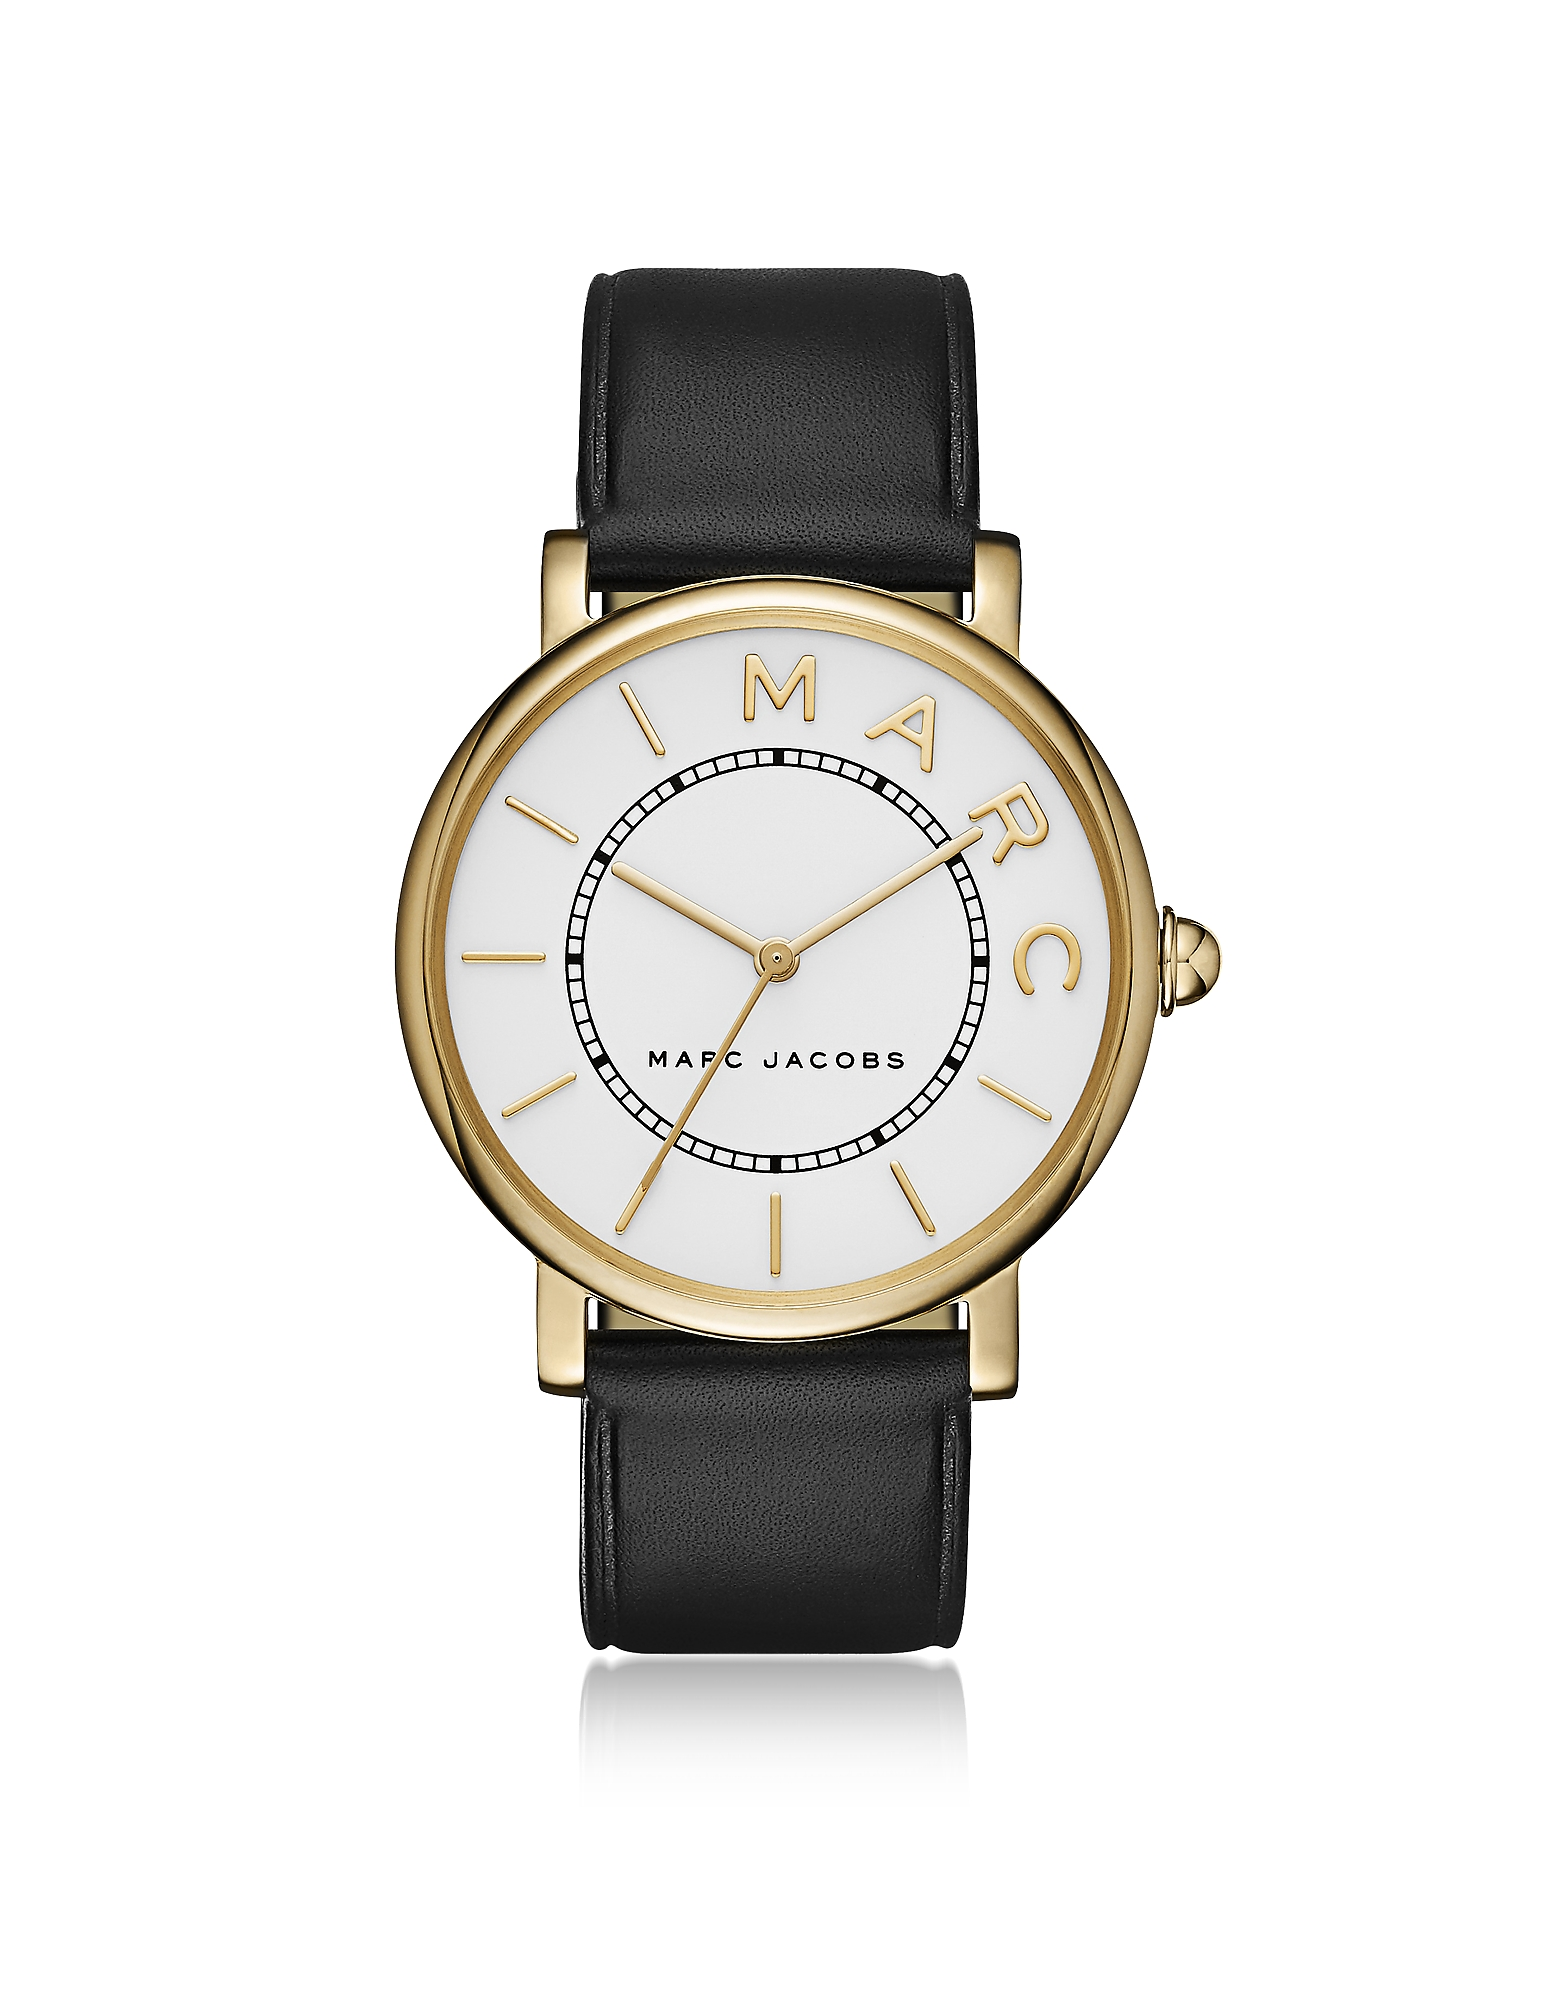 Marc Jacobs Women's Watches, Roxy Gold Tone and Black Leather Women's Watch